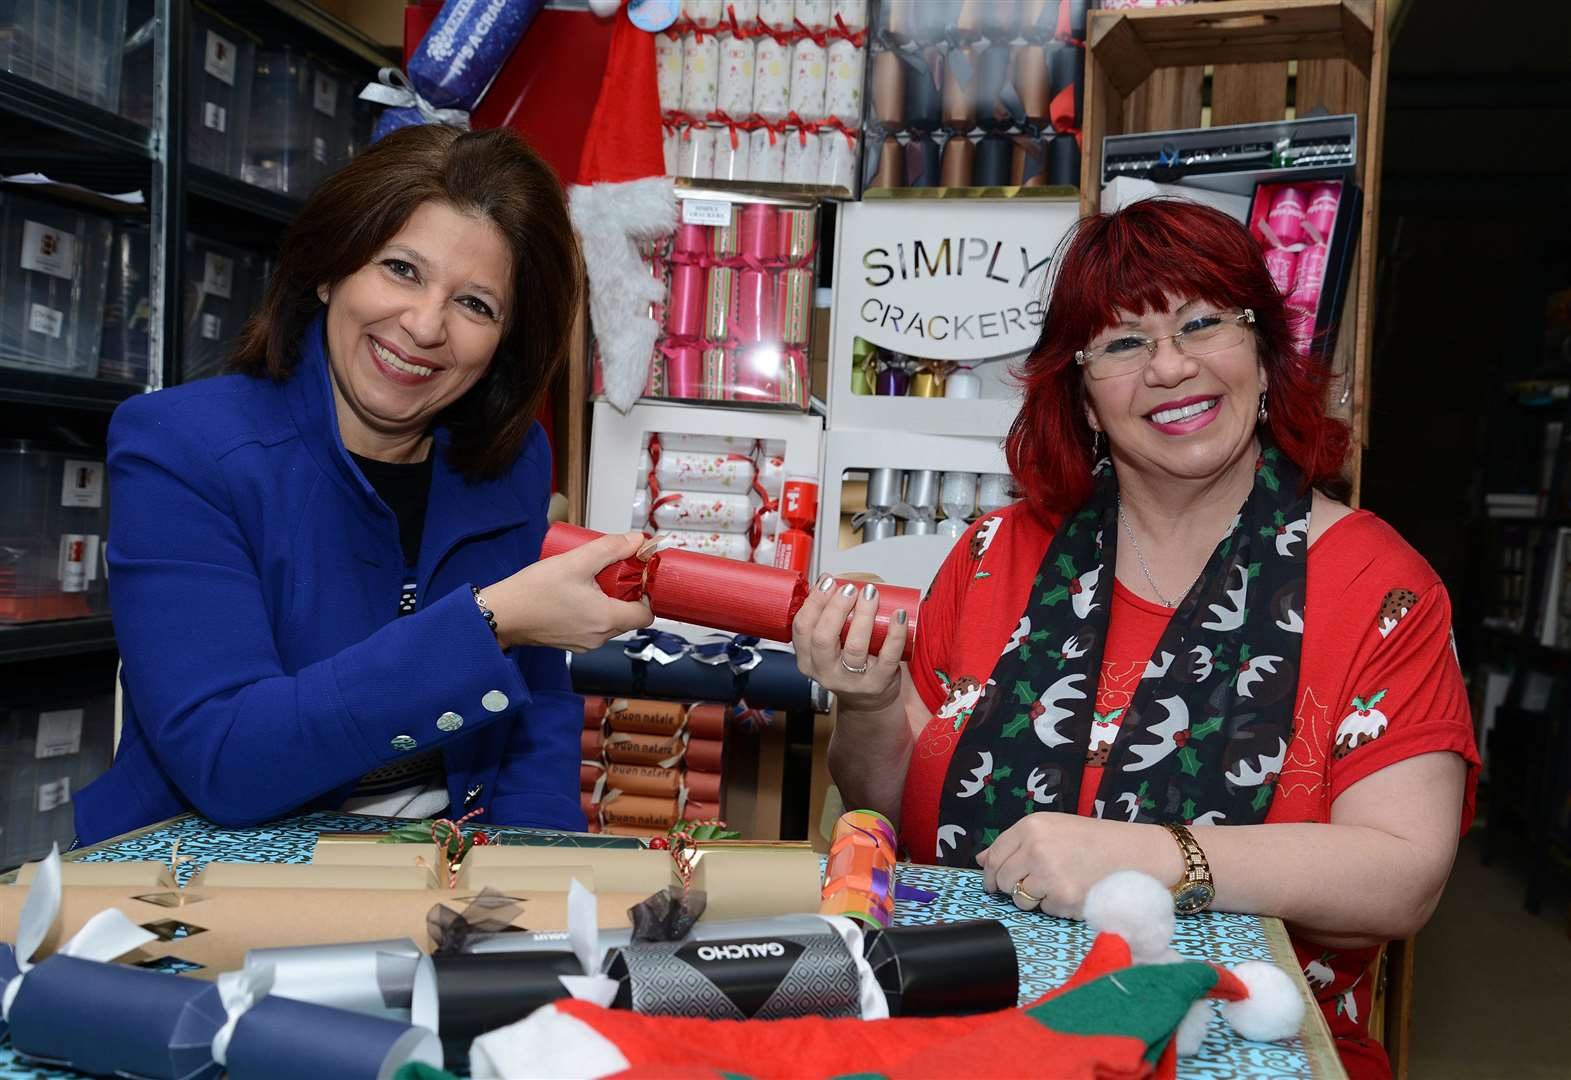 Bottesford cracker factory becomes inspiration behind bestselling Christmas book